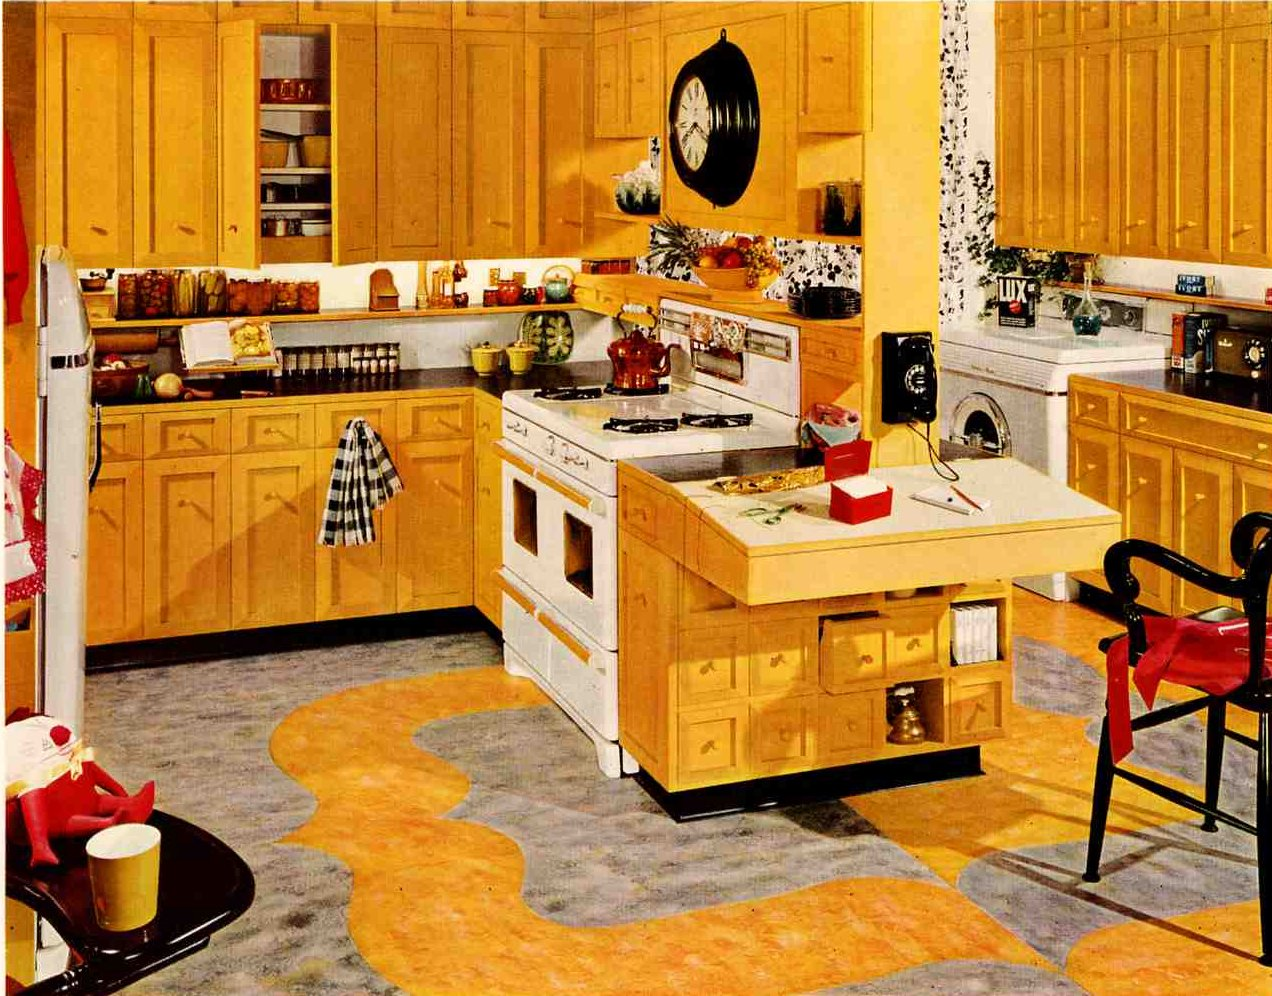 ... cabinets orange kitchen cabinets italian kitchen cabinets design